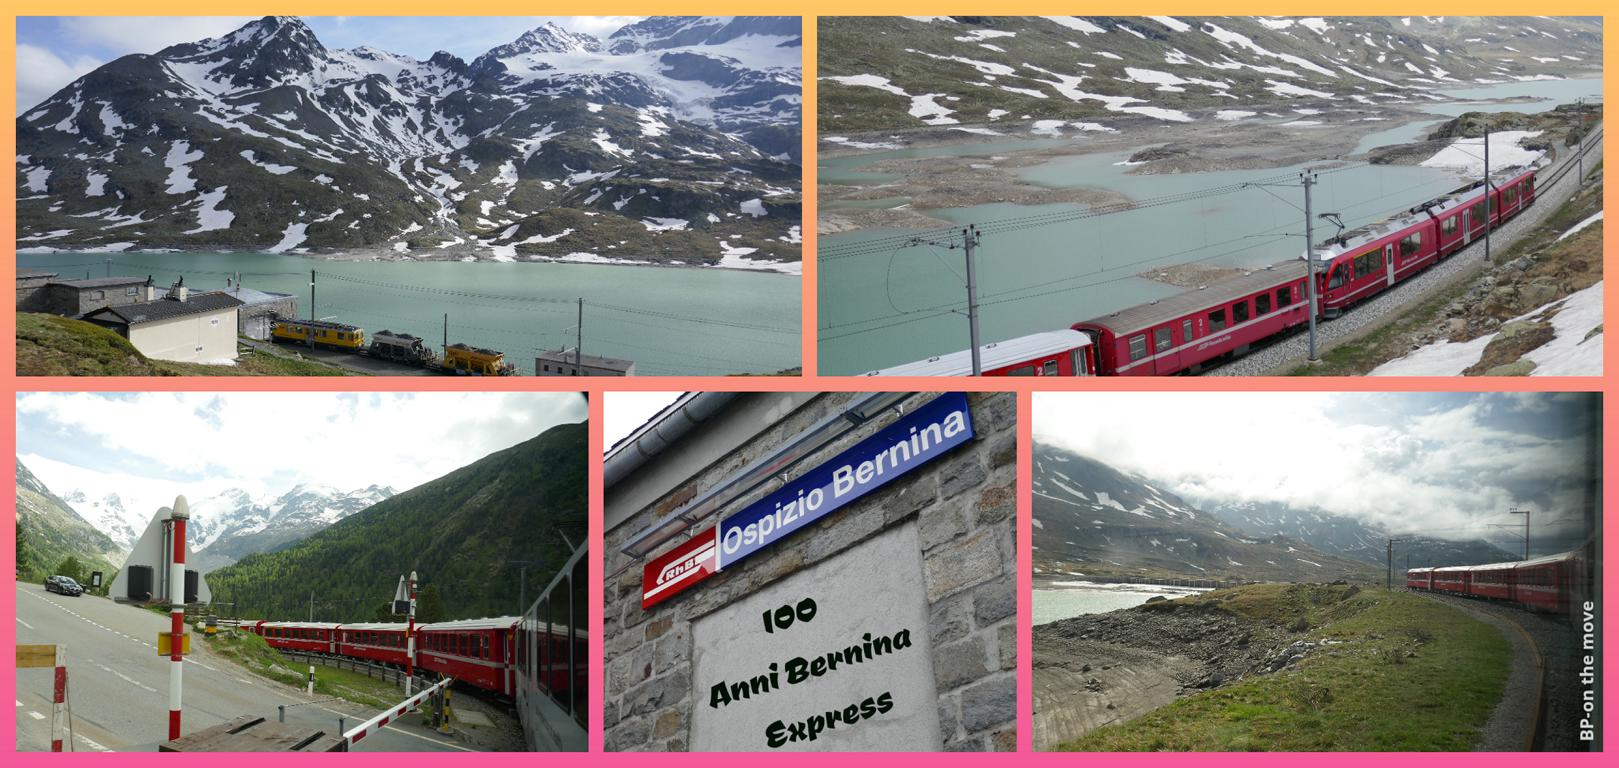 100 Anni Bernina Express